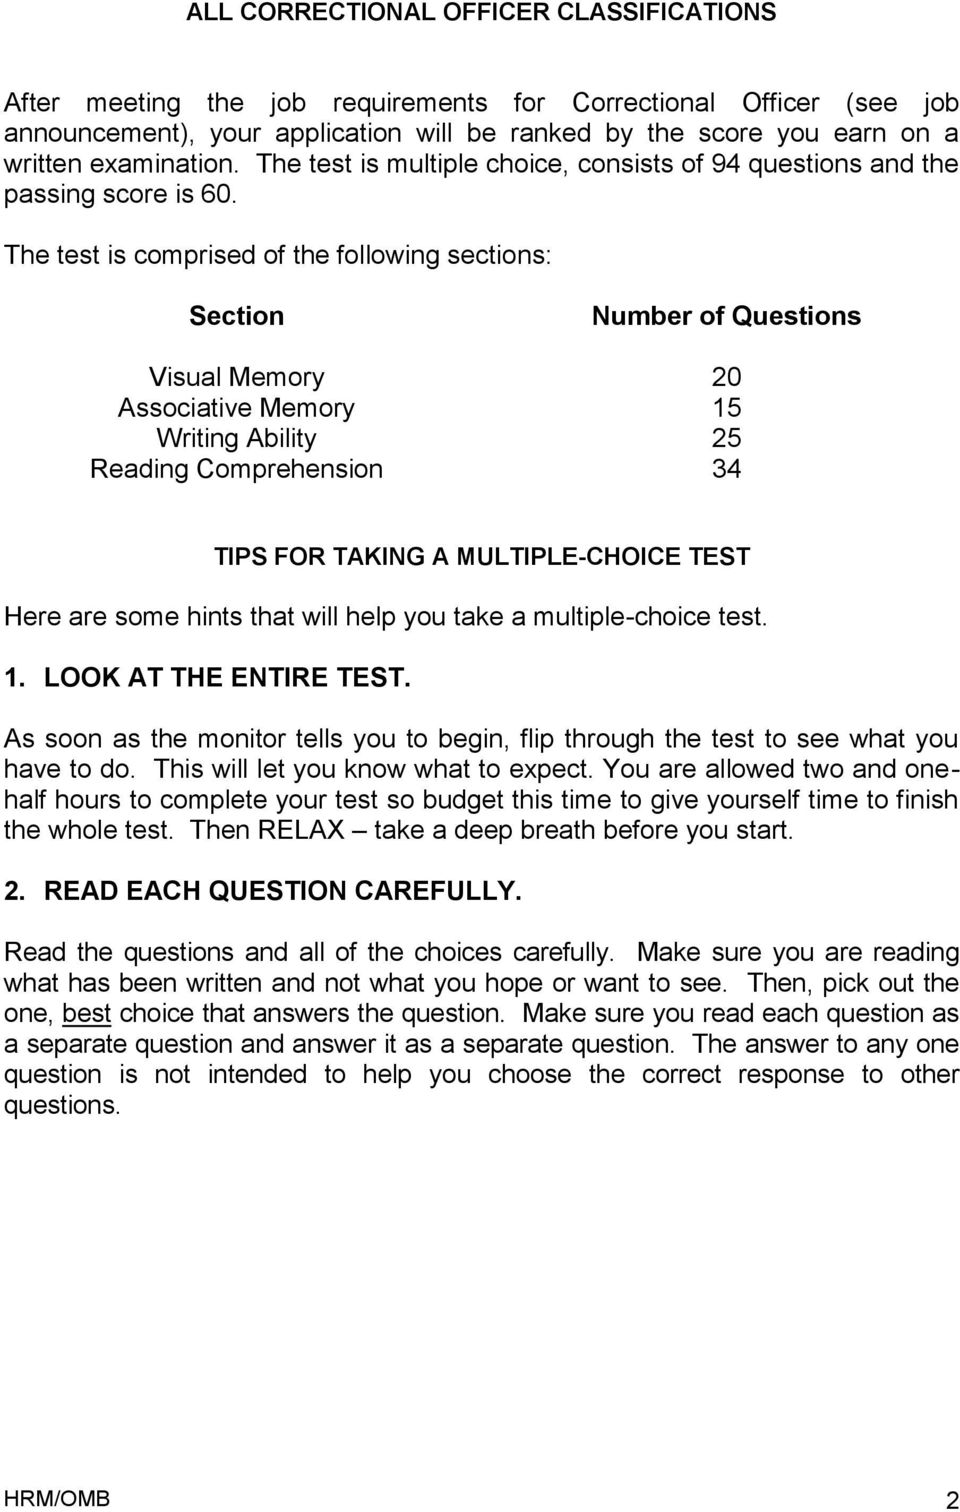 The test is comprised of the following sections: Section Number of Questions Visual Memory 20 Associative Memory 15 Writing Ability 25 Reading Comprehension 34 TIPS FOR TAKING A MULTIPLE-CHOICE TEST